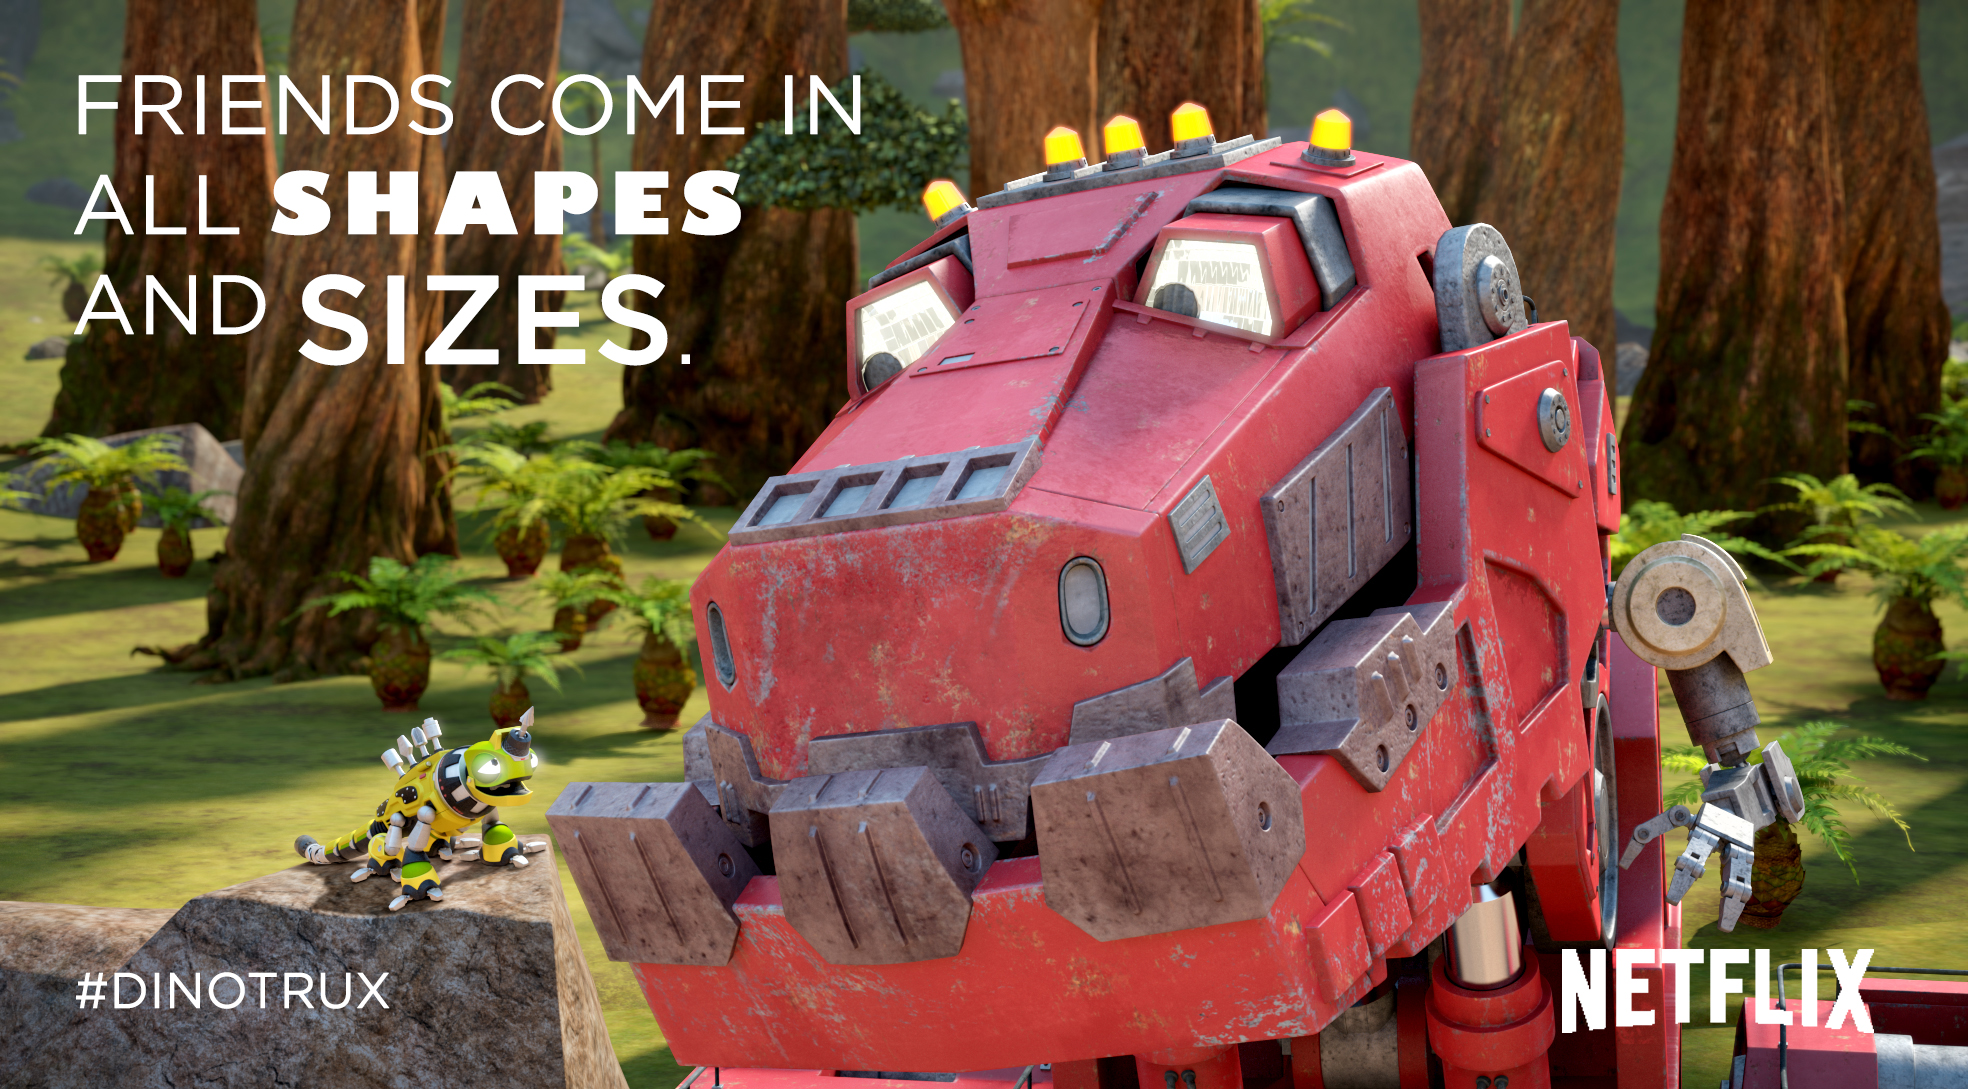 Dinosaurs + Trucks = Dinotrux on Netflix